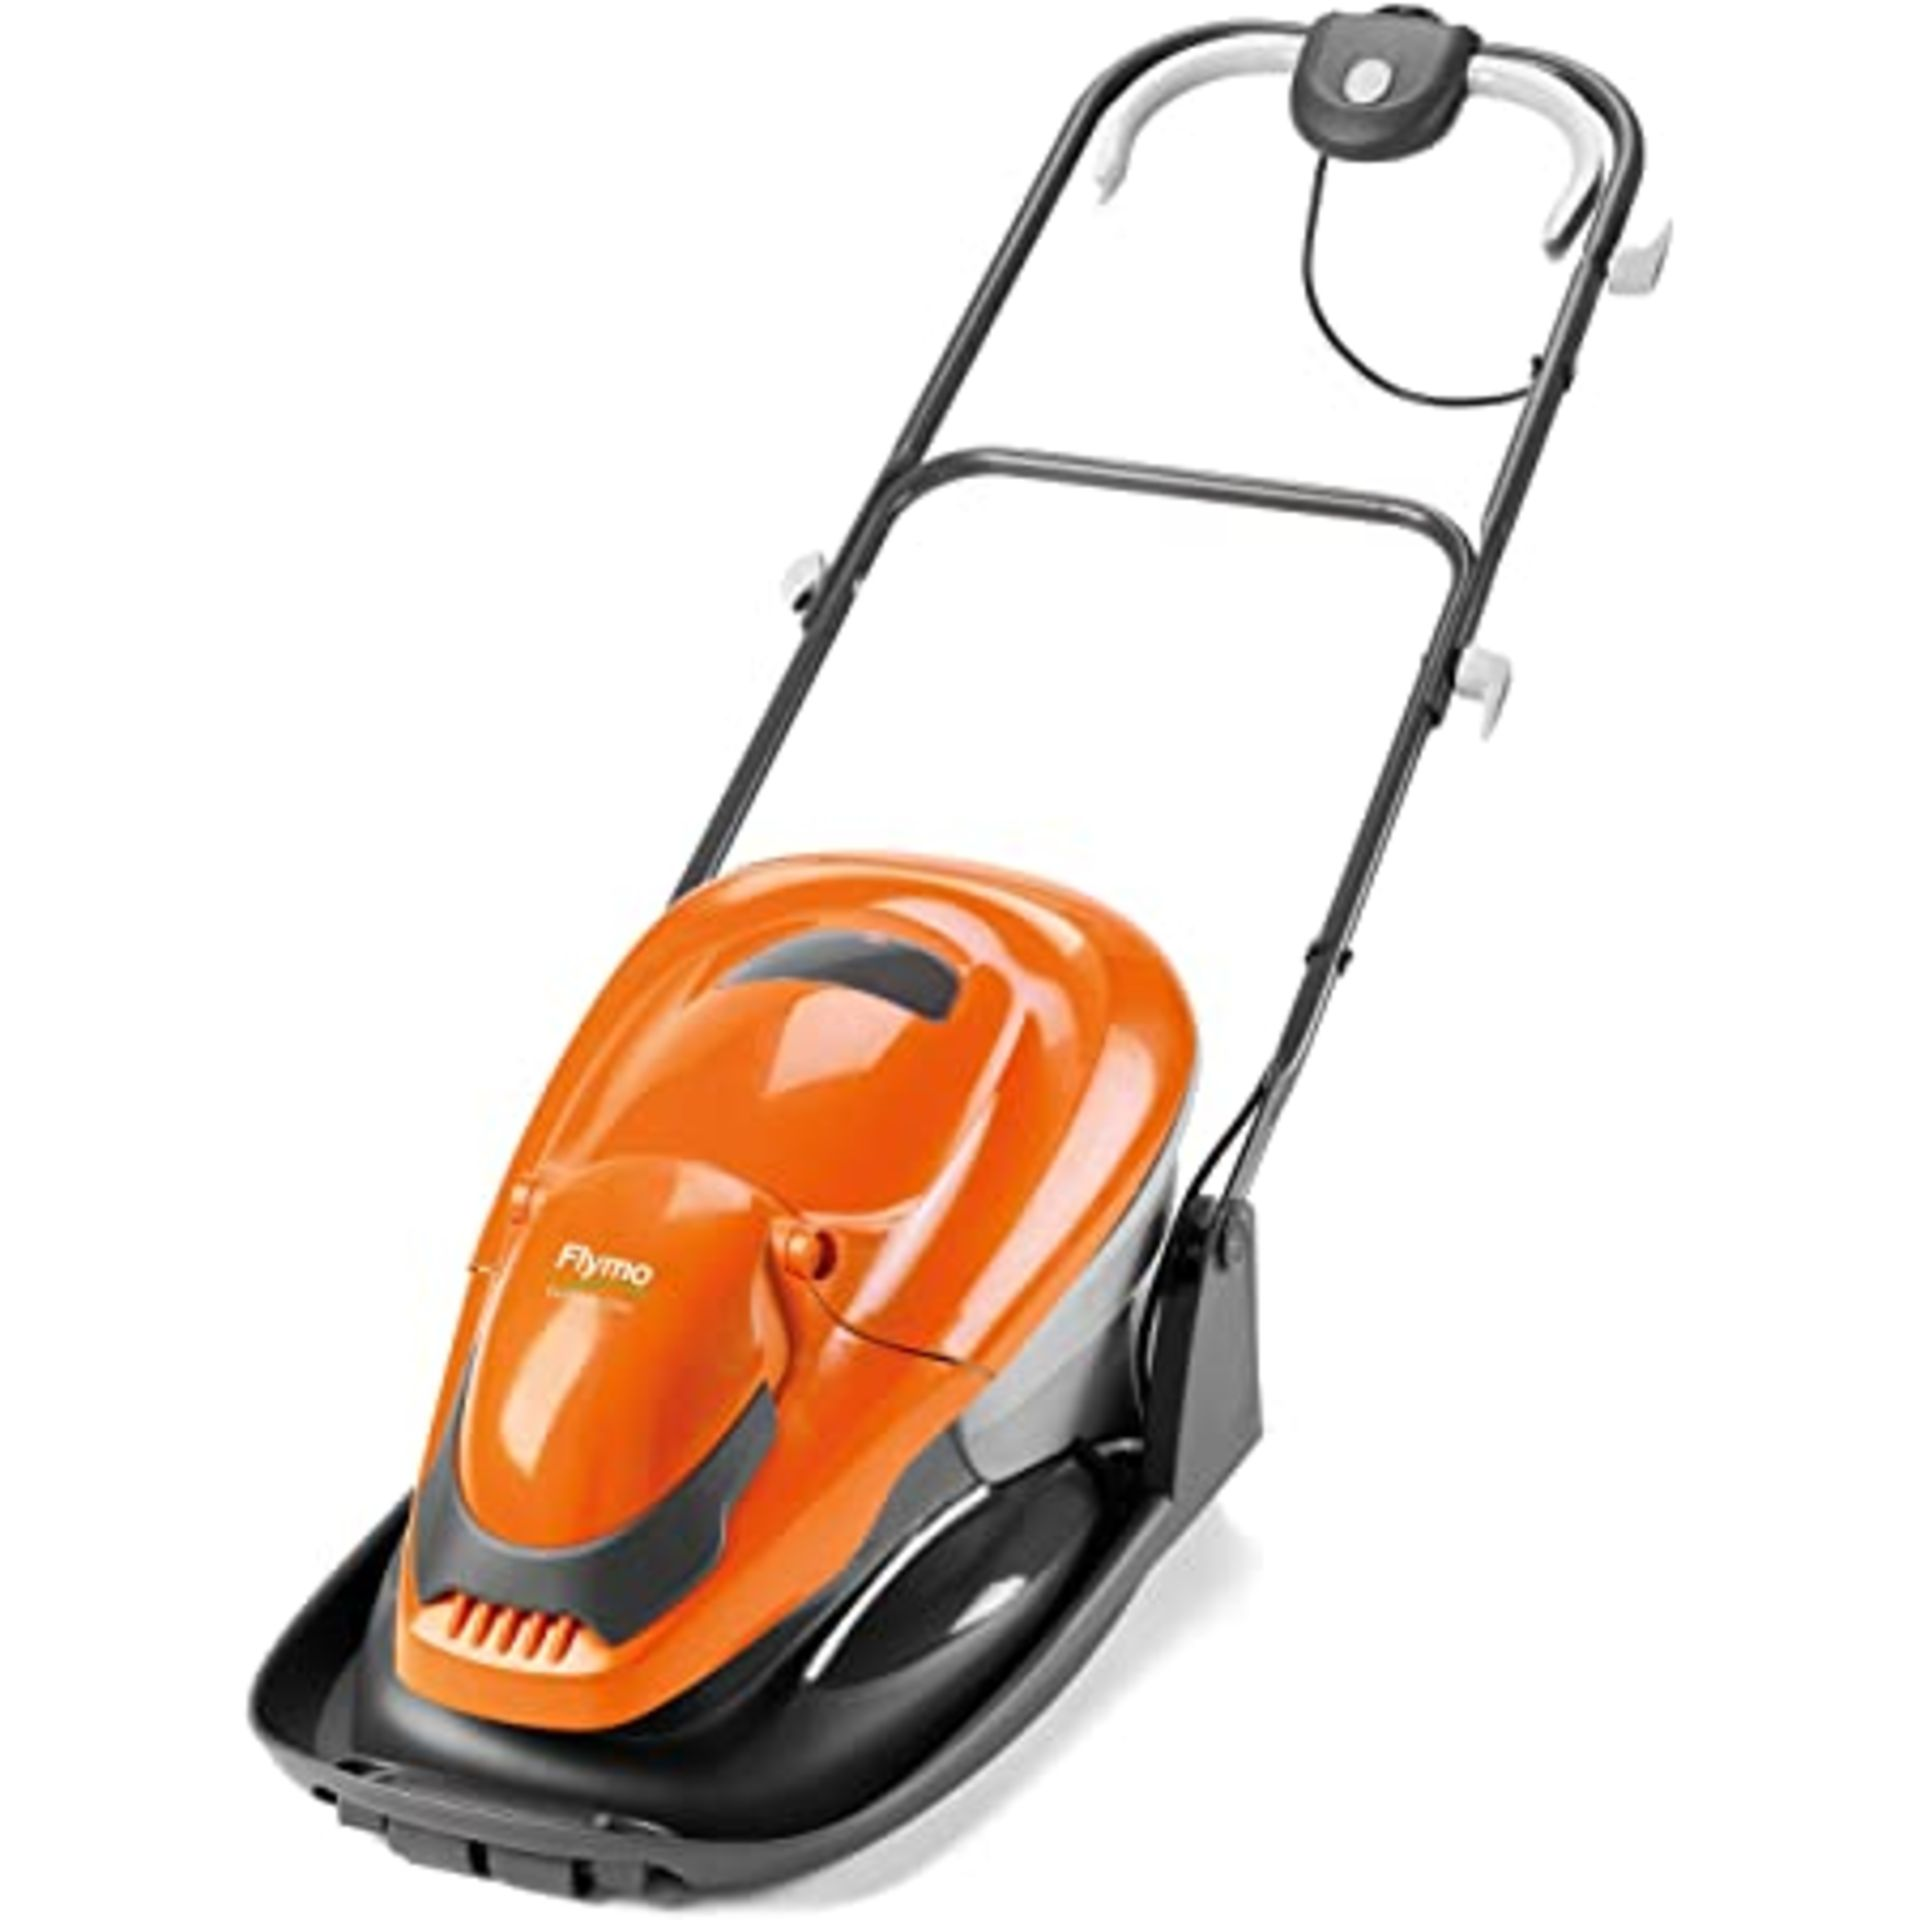 (P7) 2x Flymo EasiGlide 300 Electric Hover Collect Lawnmower RRP £139 Each. - Image 2 of 3